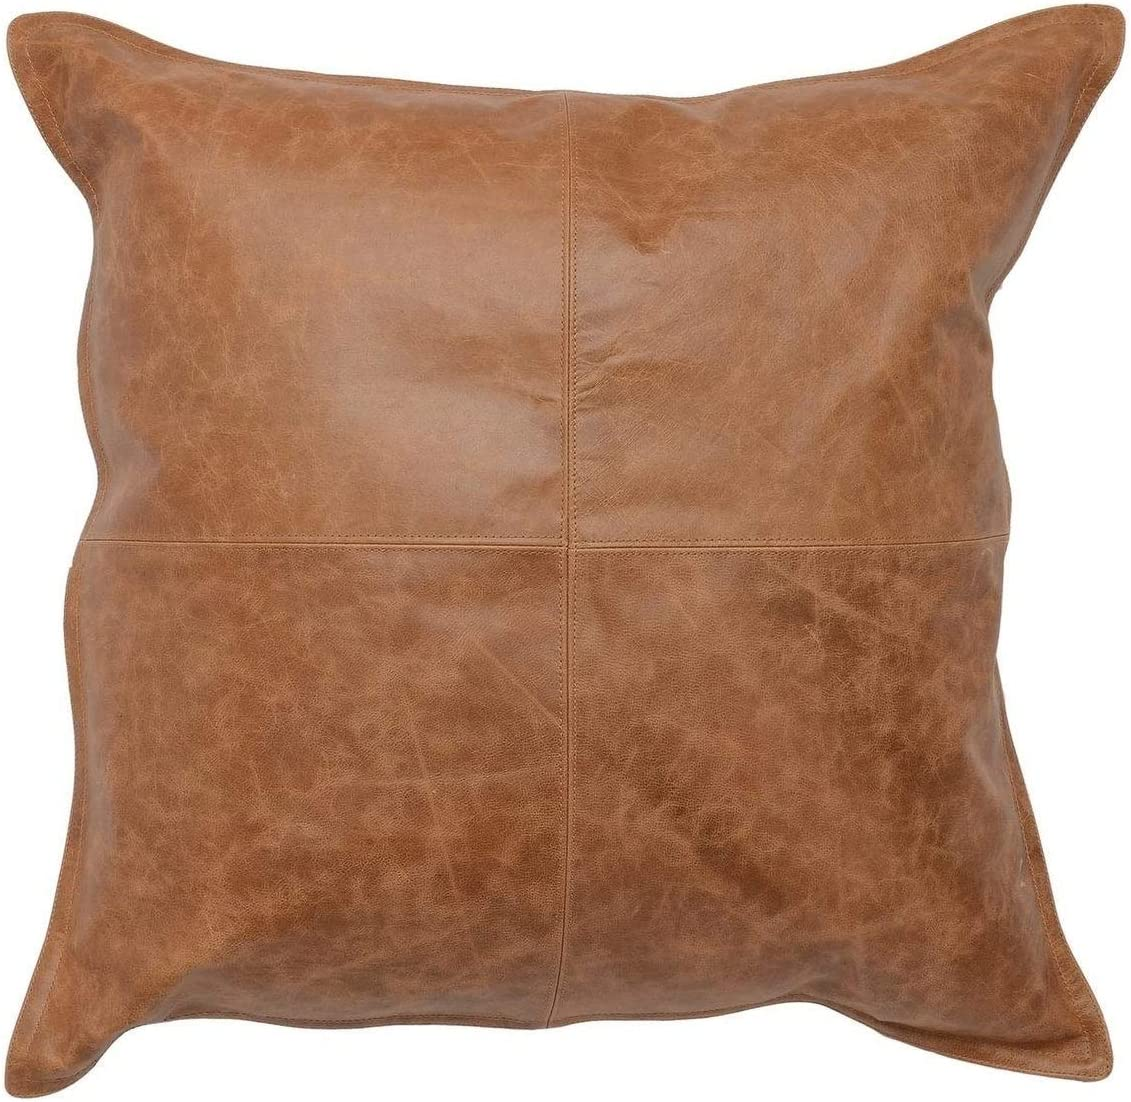 SKINOUTFIT Genuine Leather Decorative Modern Latest Max 50% OFF item Throw Pillow Covers